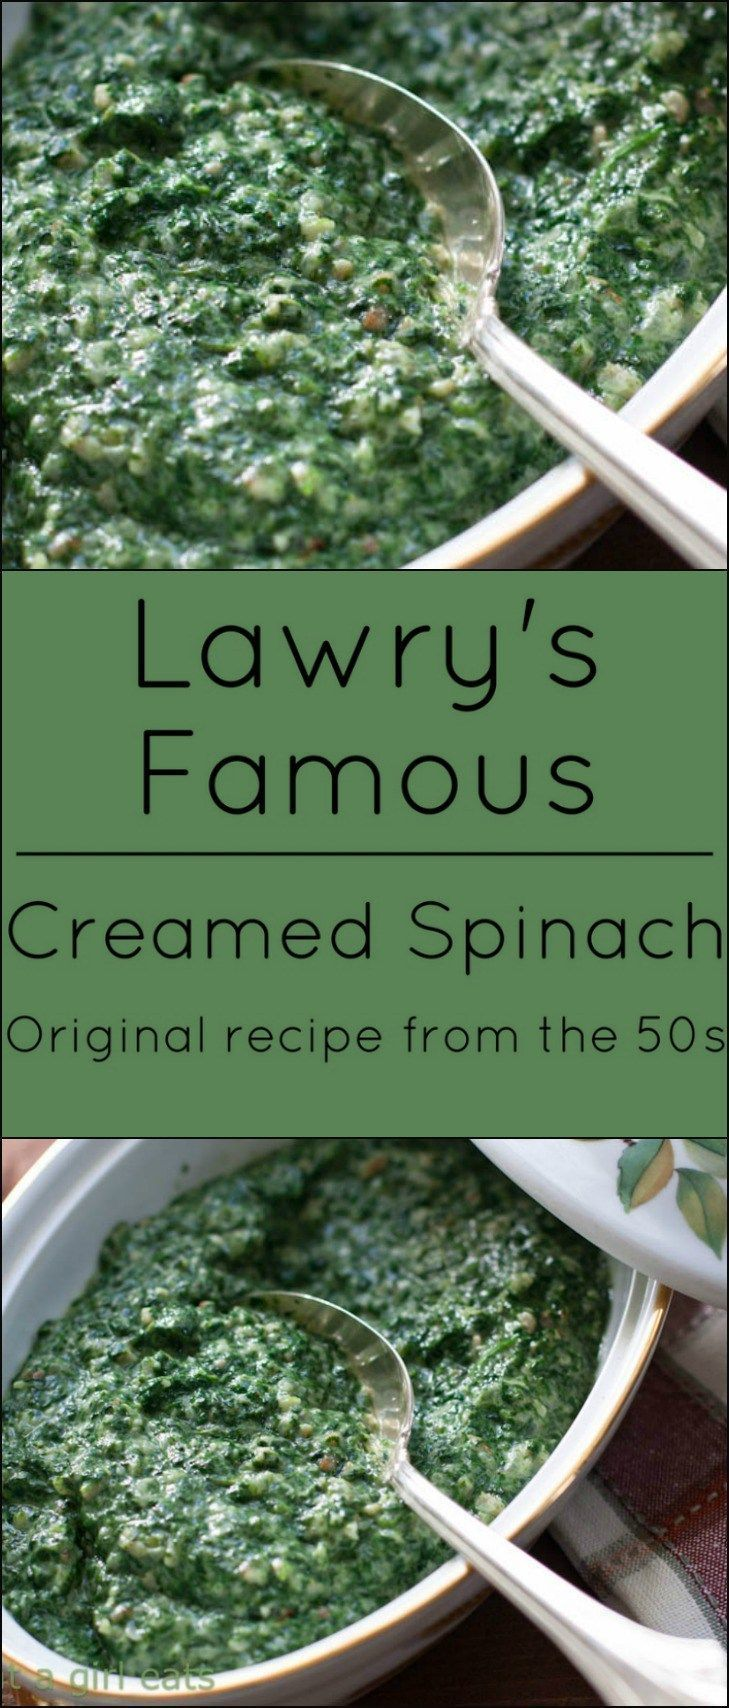 Lawry S Famous Creamed Spinach Original Recipe From The 50s Creamed Spinach Recipes